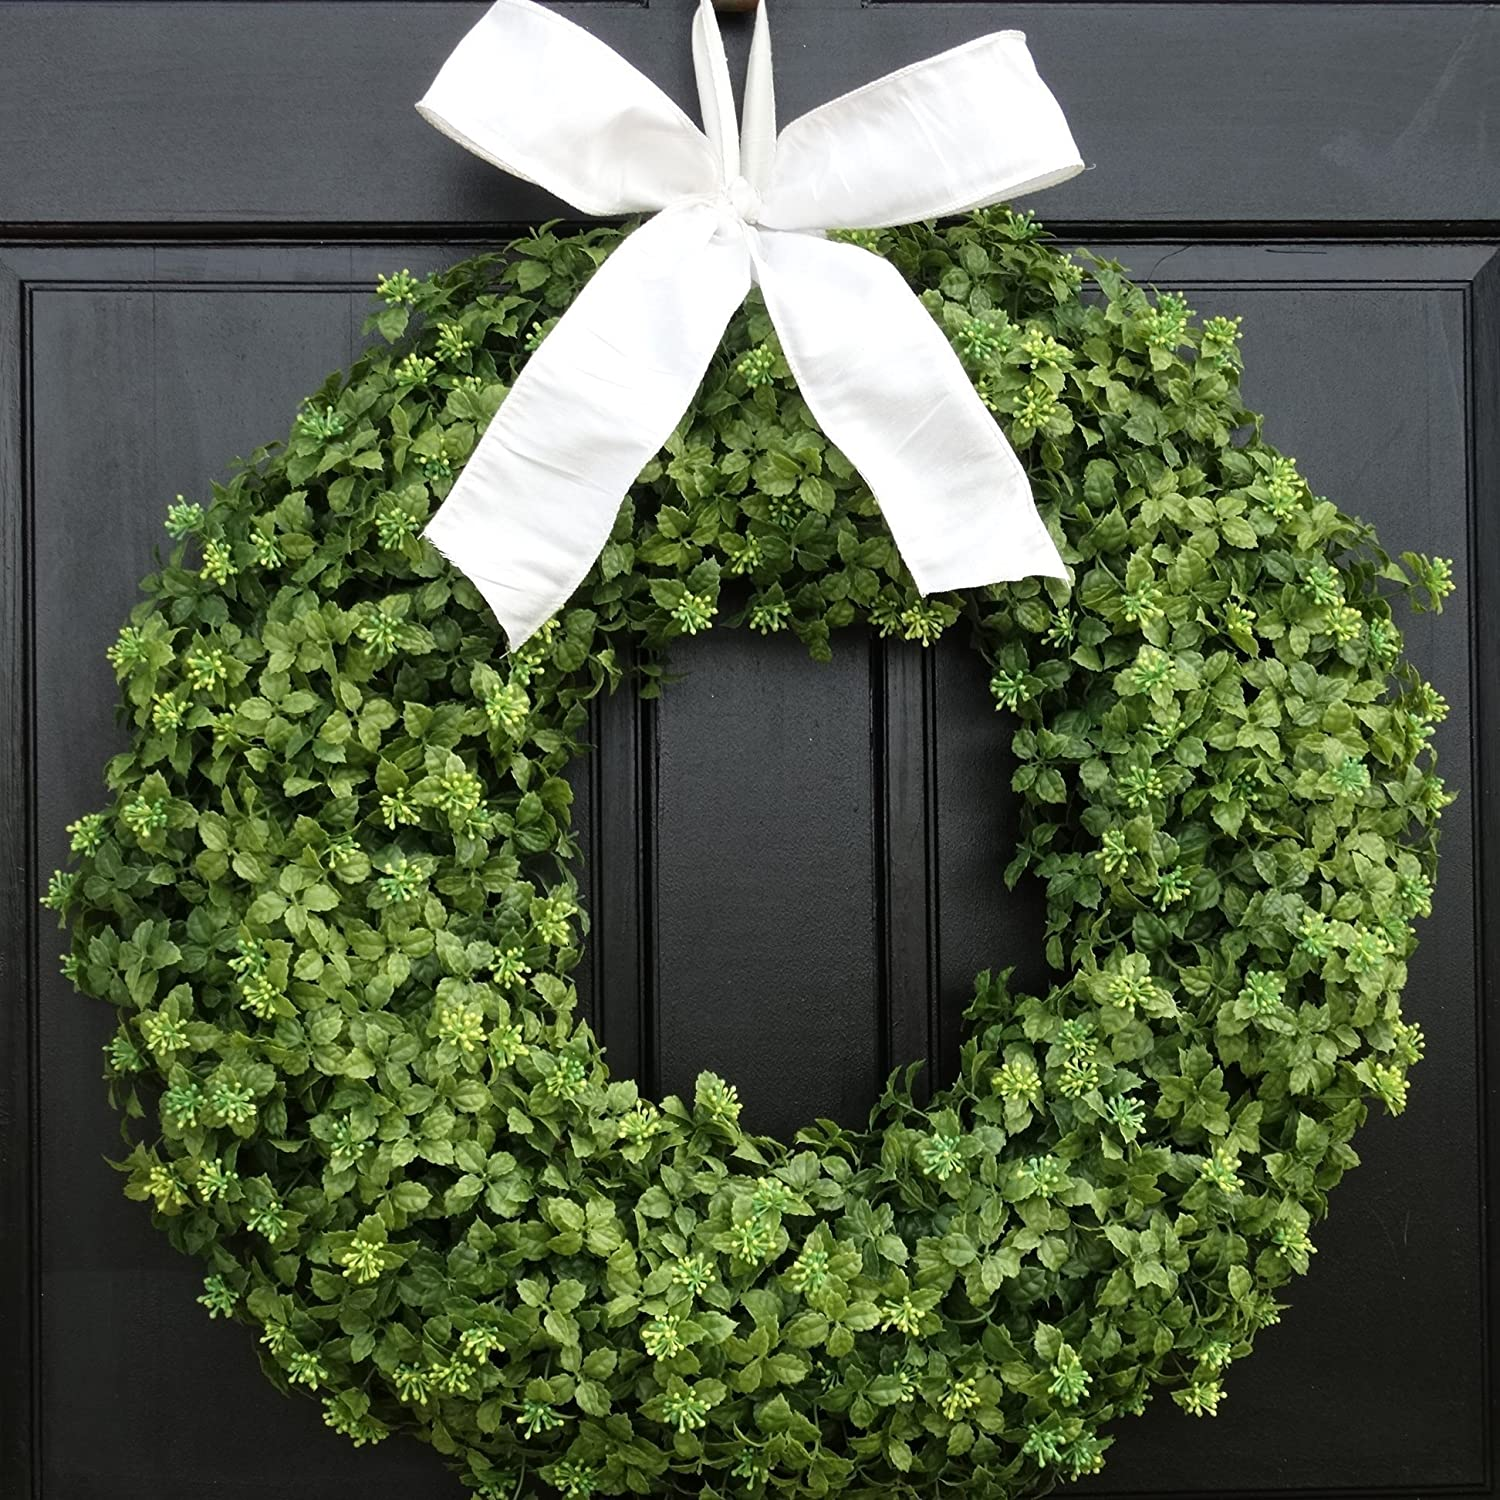 Extra Large Sizes; Indoor//Outdoor Spring Boxwood Wreath for Front Door Decor; Summer Year Round Everyday Artificial Greenery Decoration; Small